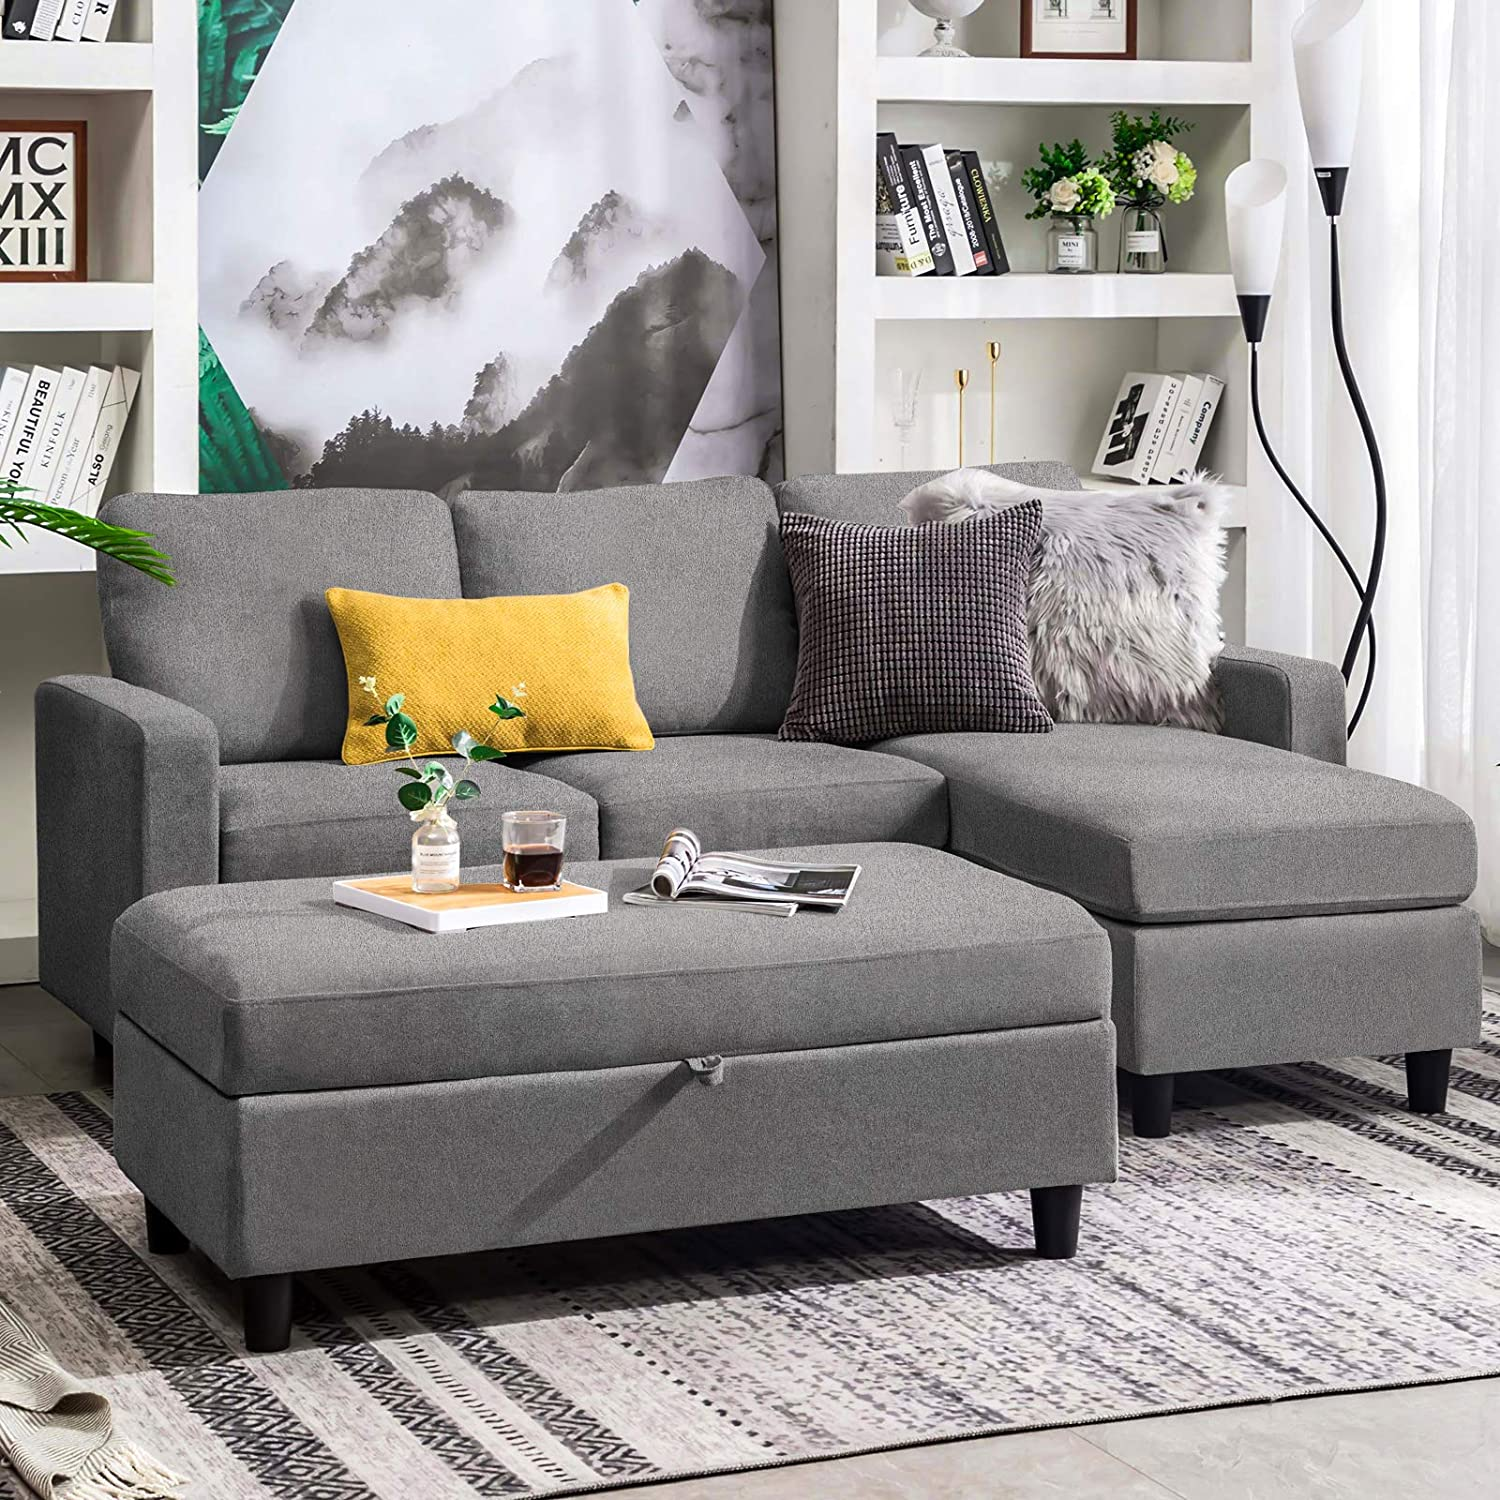 10 Best Sectional Couches Under $600 in 2021 – Emily Reviews